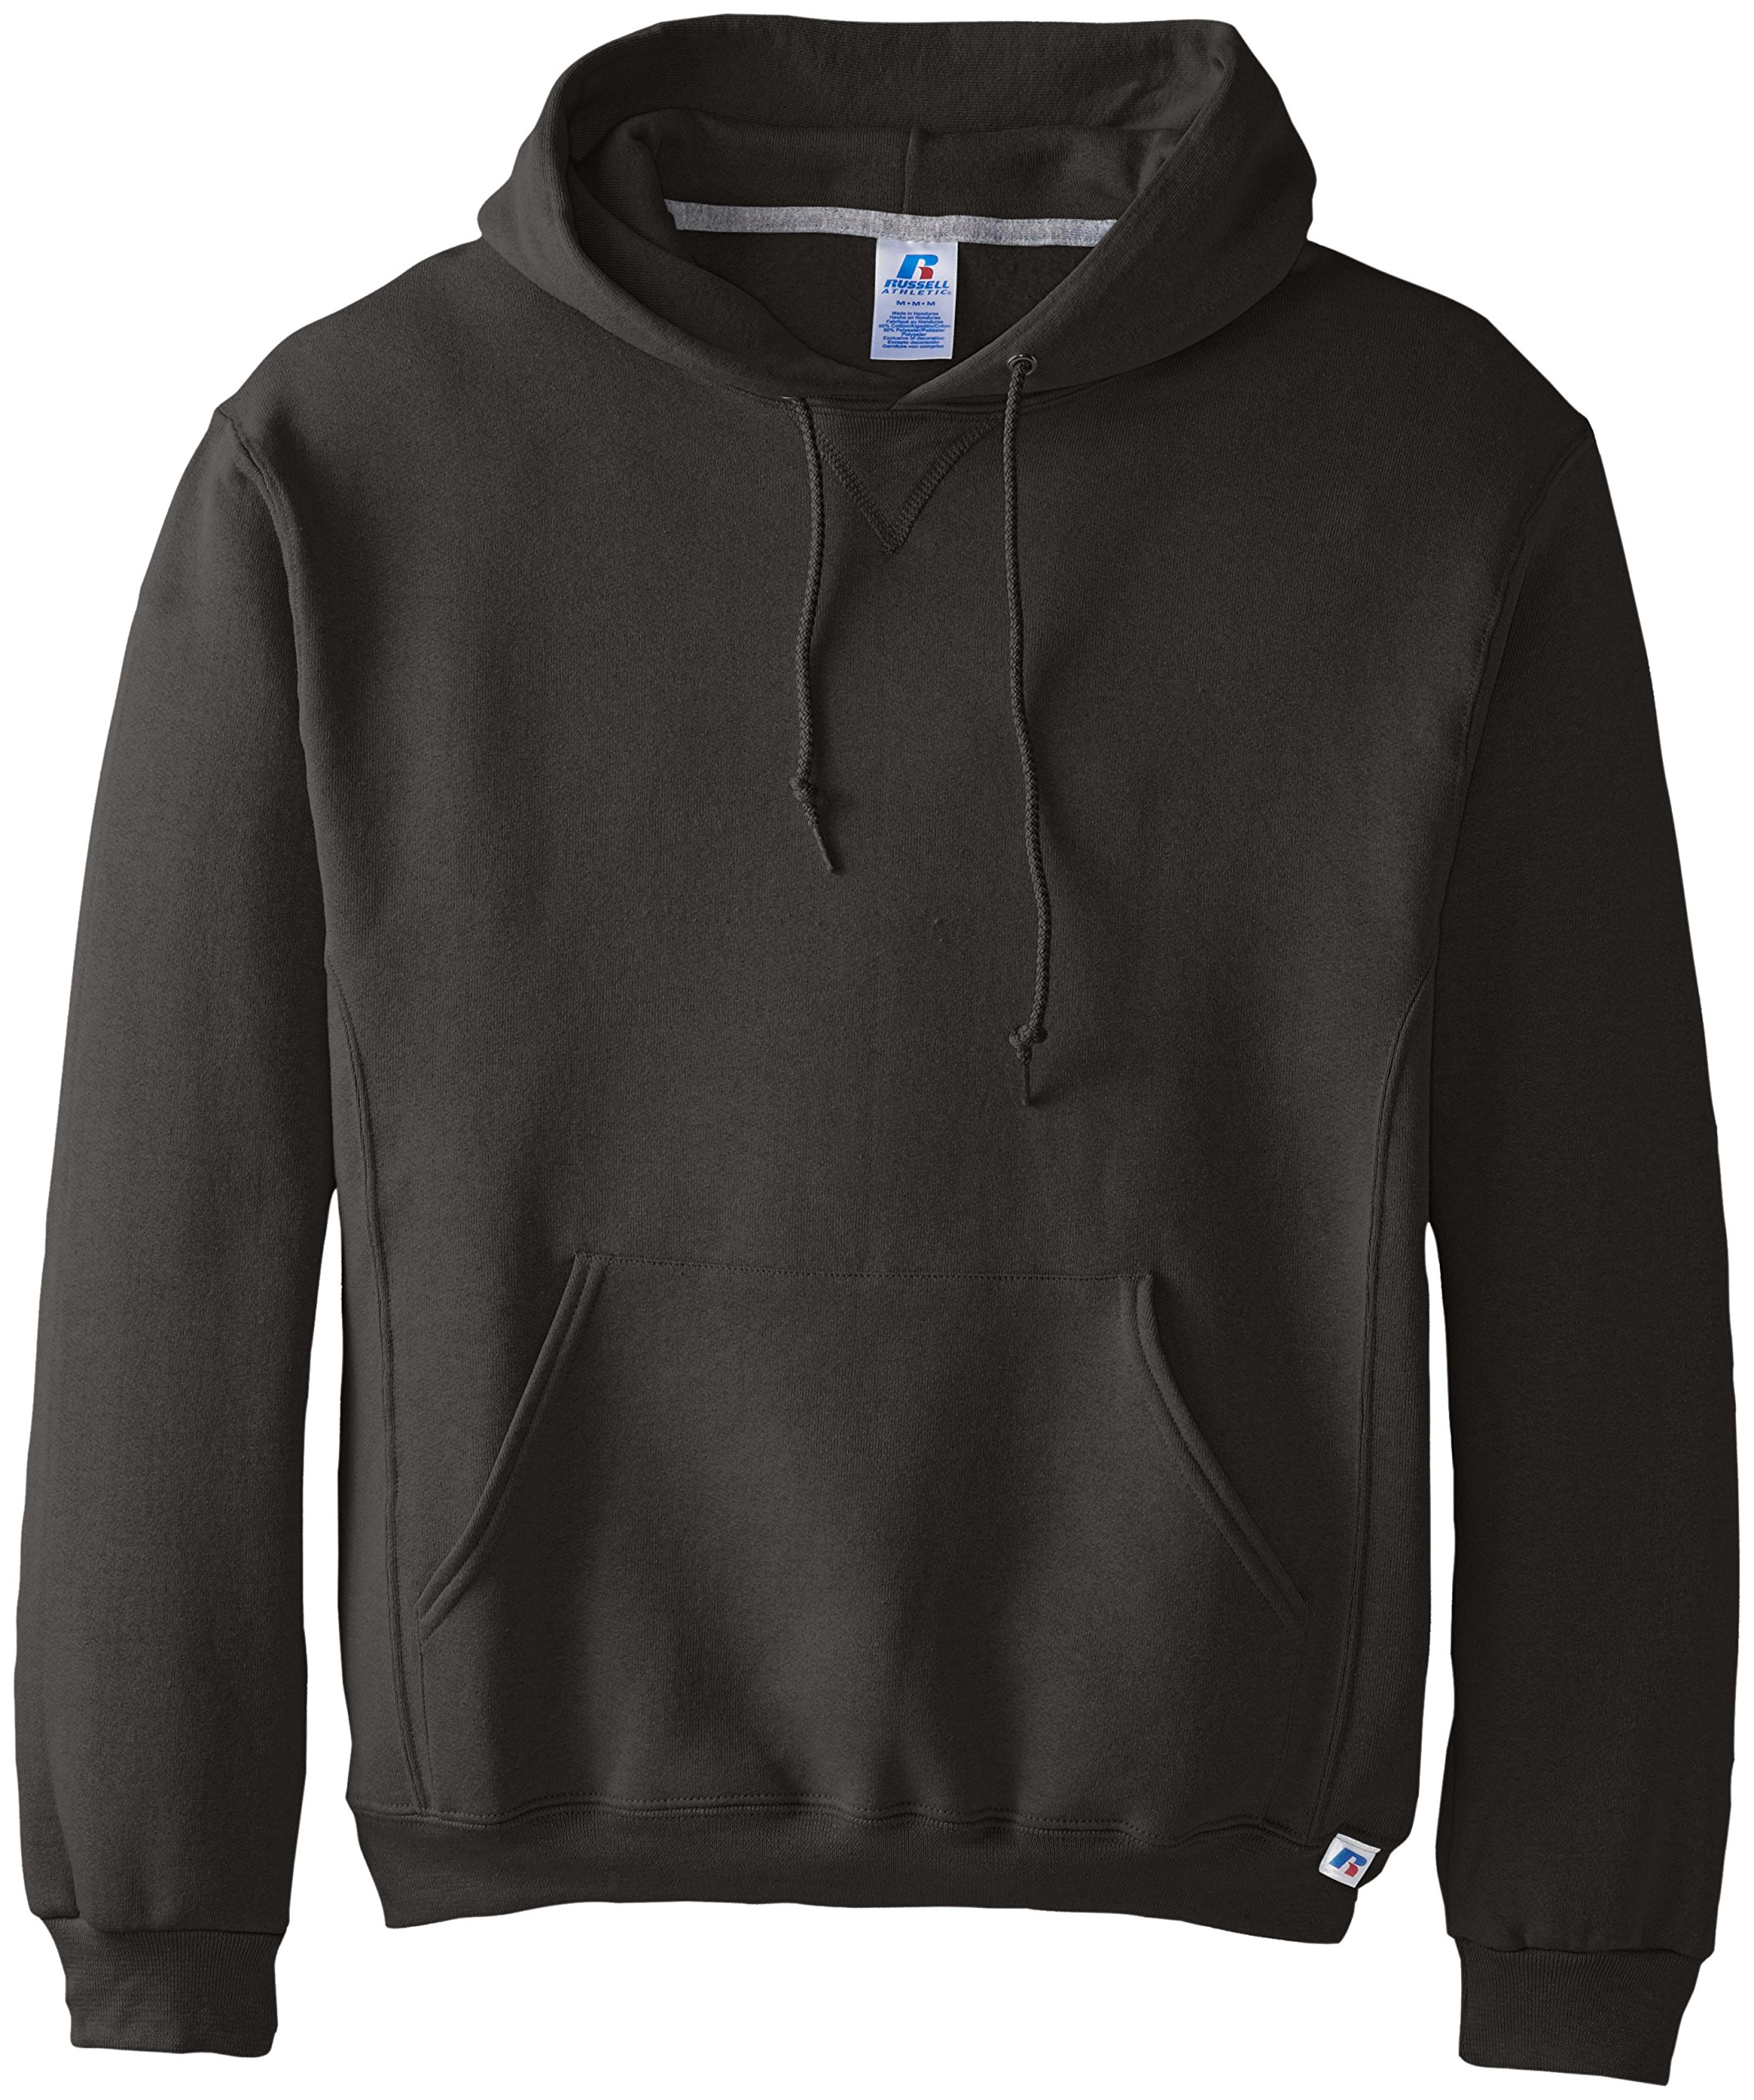 Russell Athletic Men's Dri Power Pullover Fleece Hoodie, Black, 4X-Large